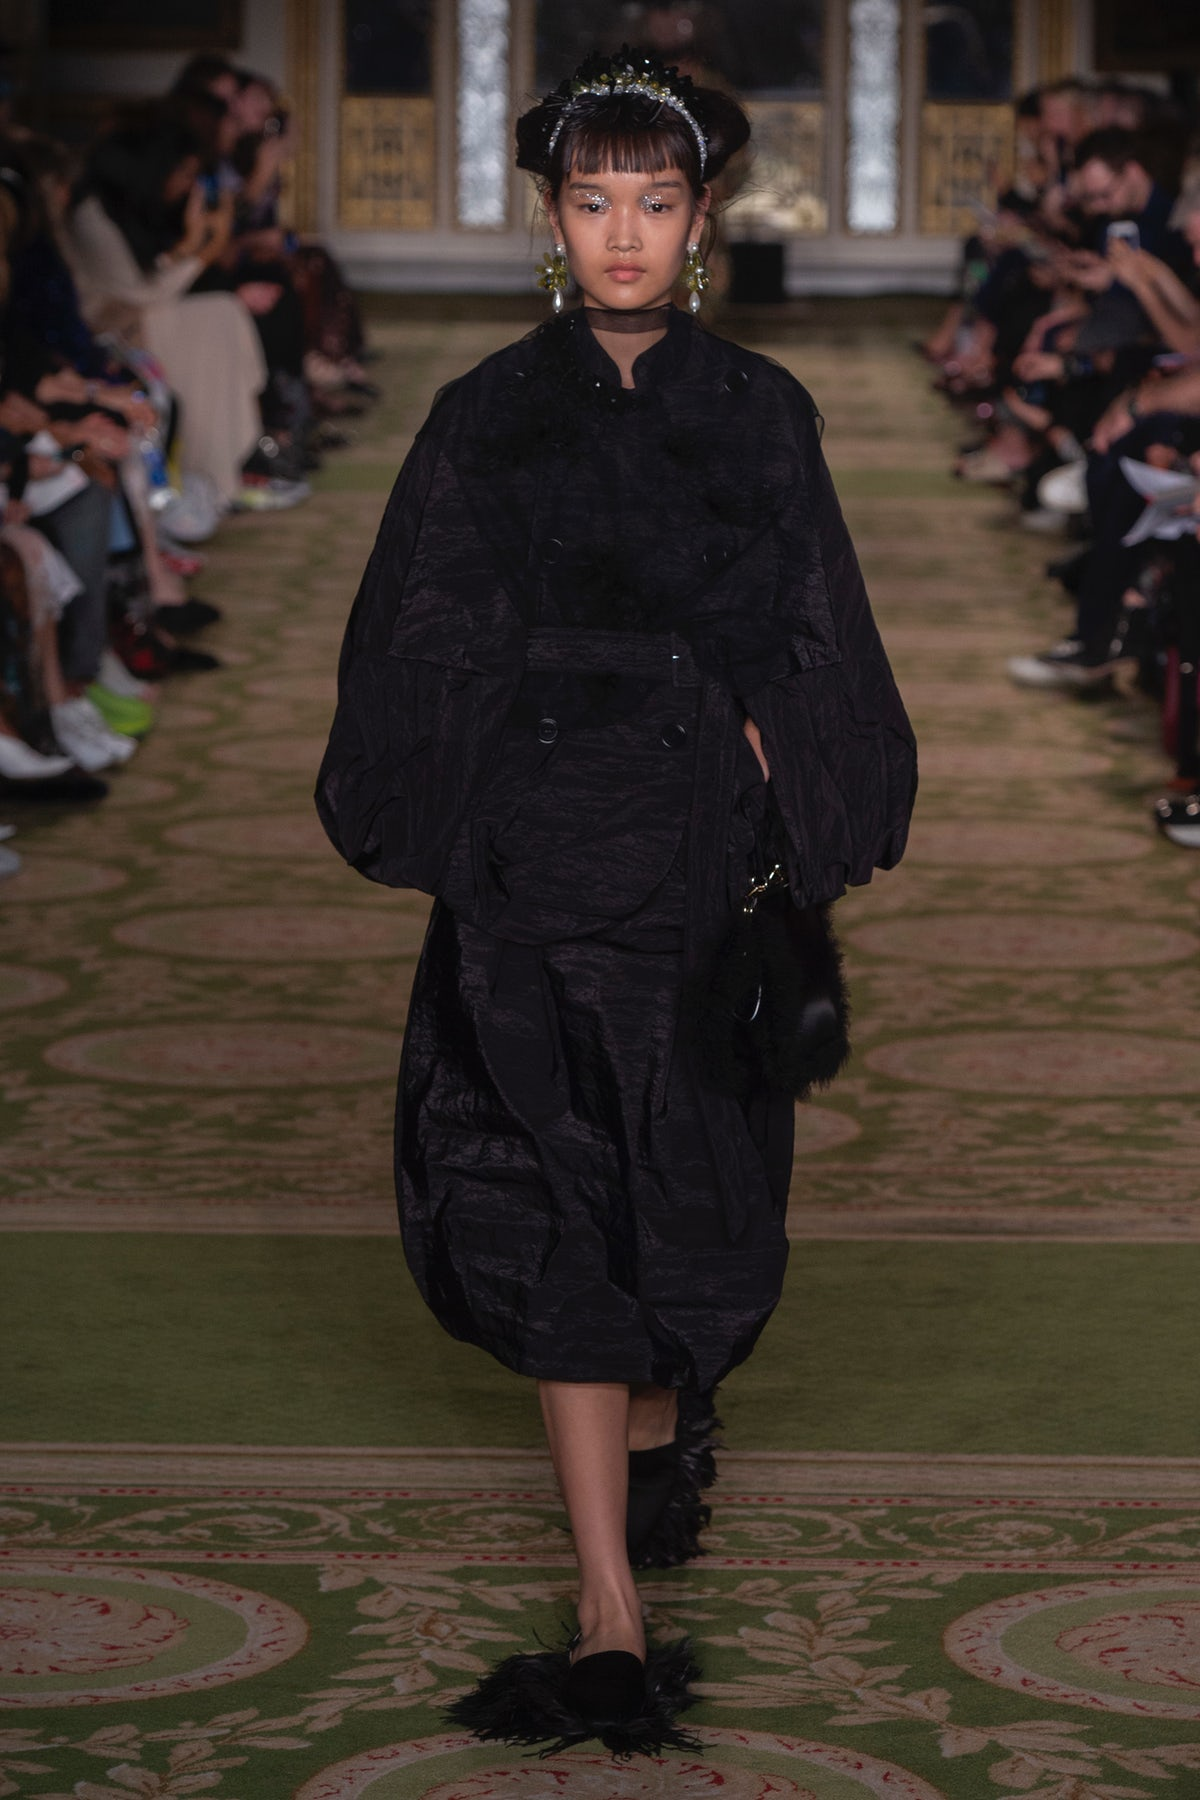 Simone Rocha Spring/Summer 2019 | Source: Indigital.tv